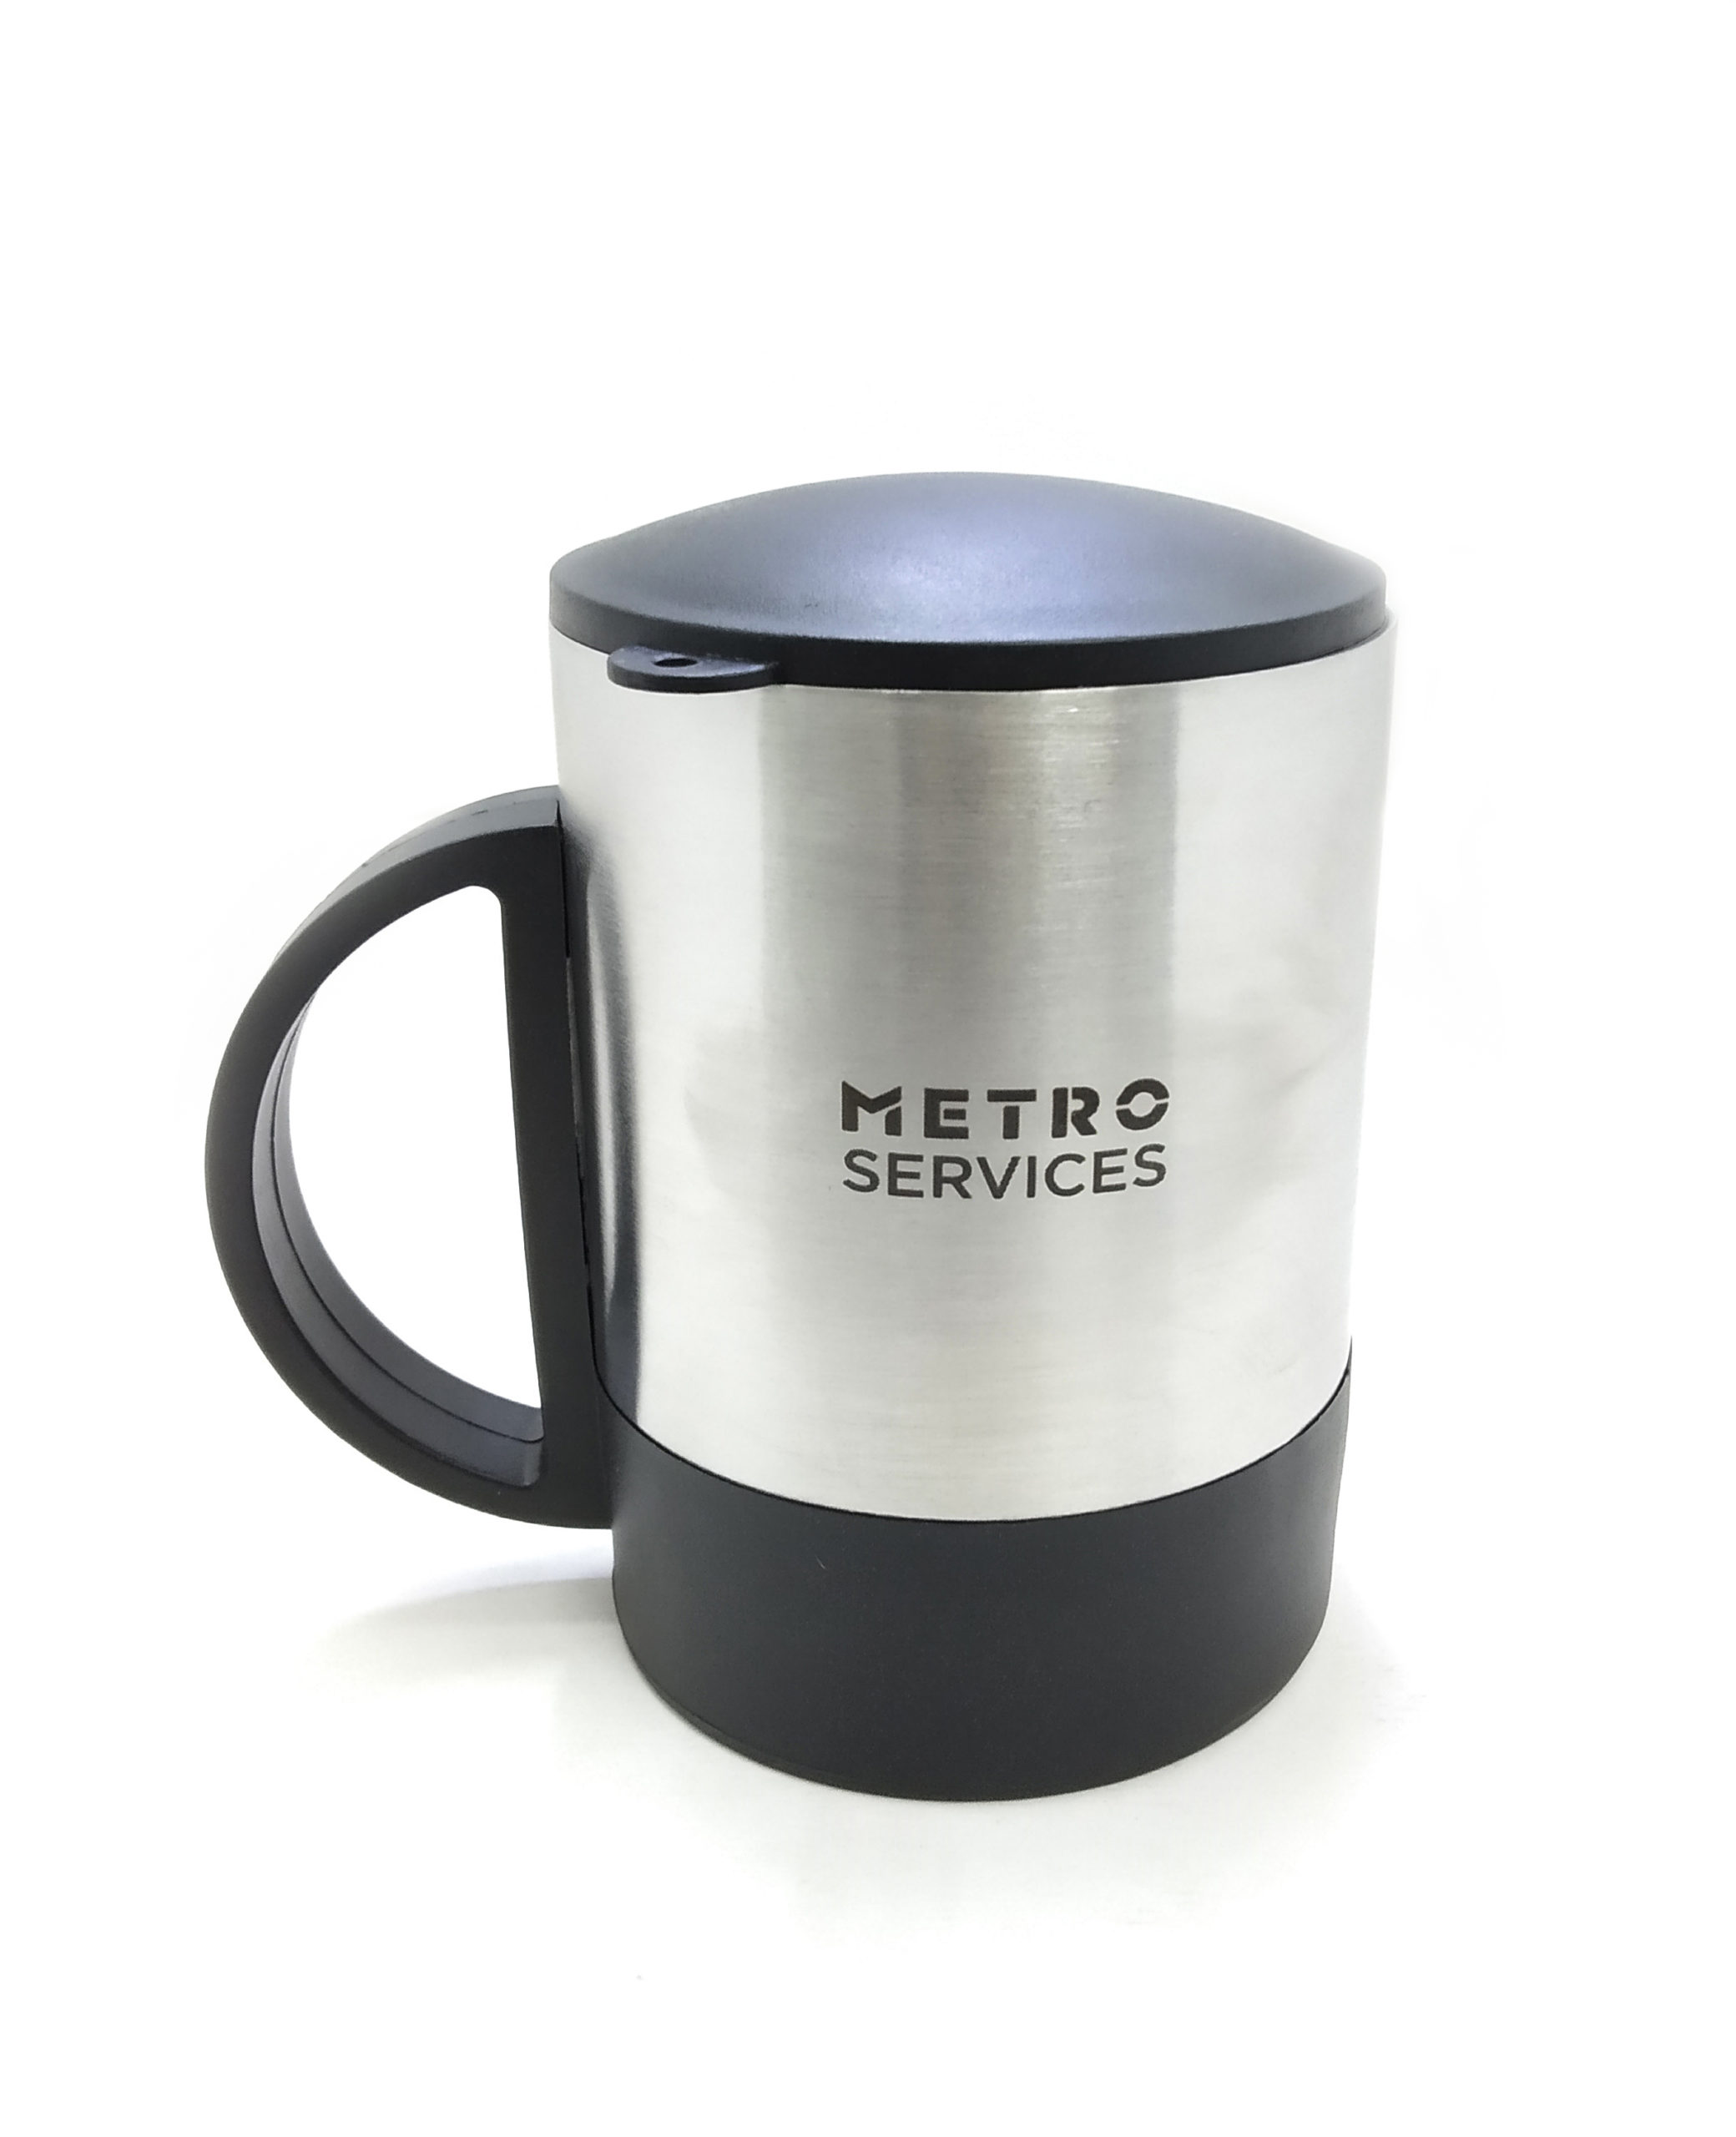 Logo engraving on coffee mug